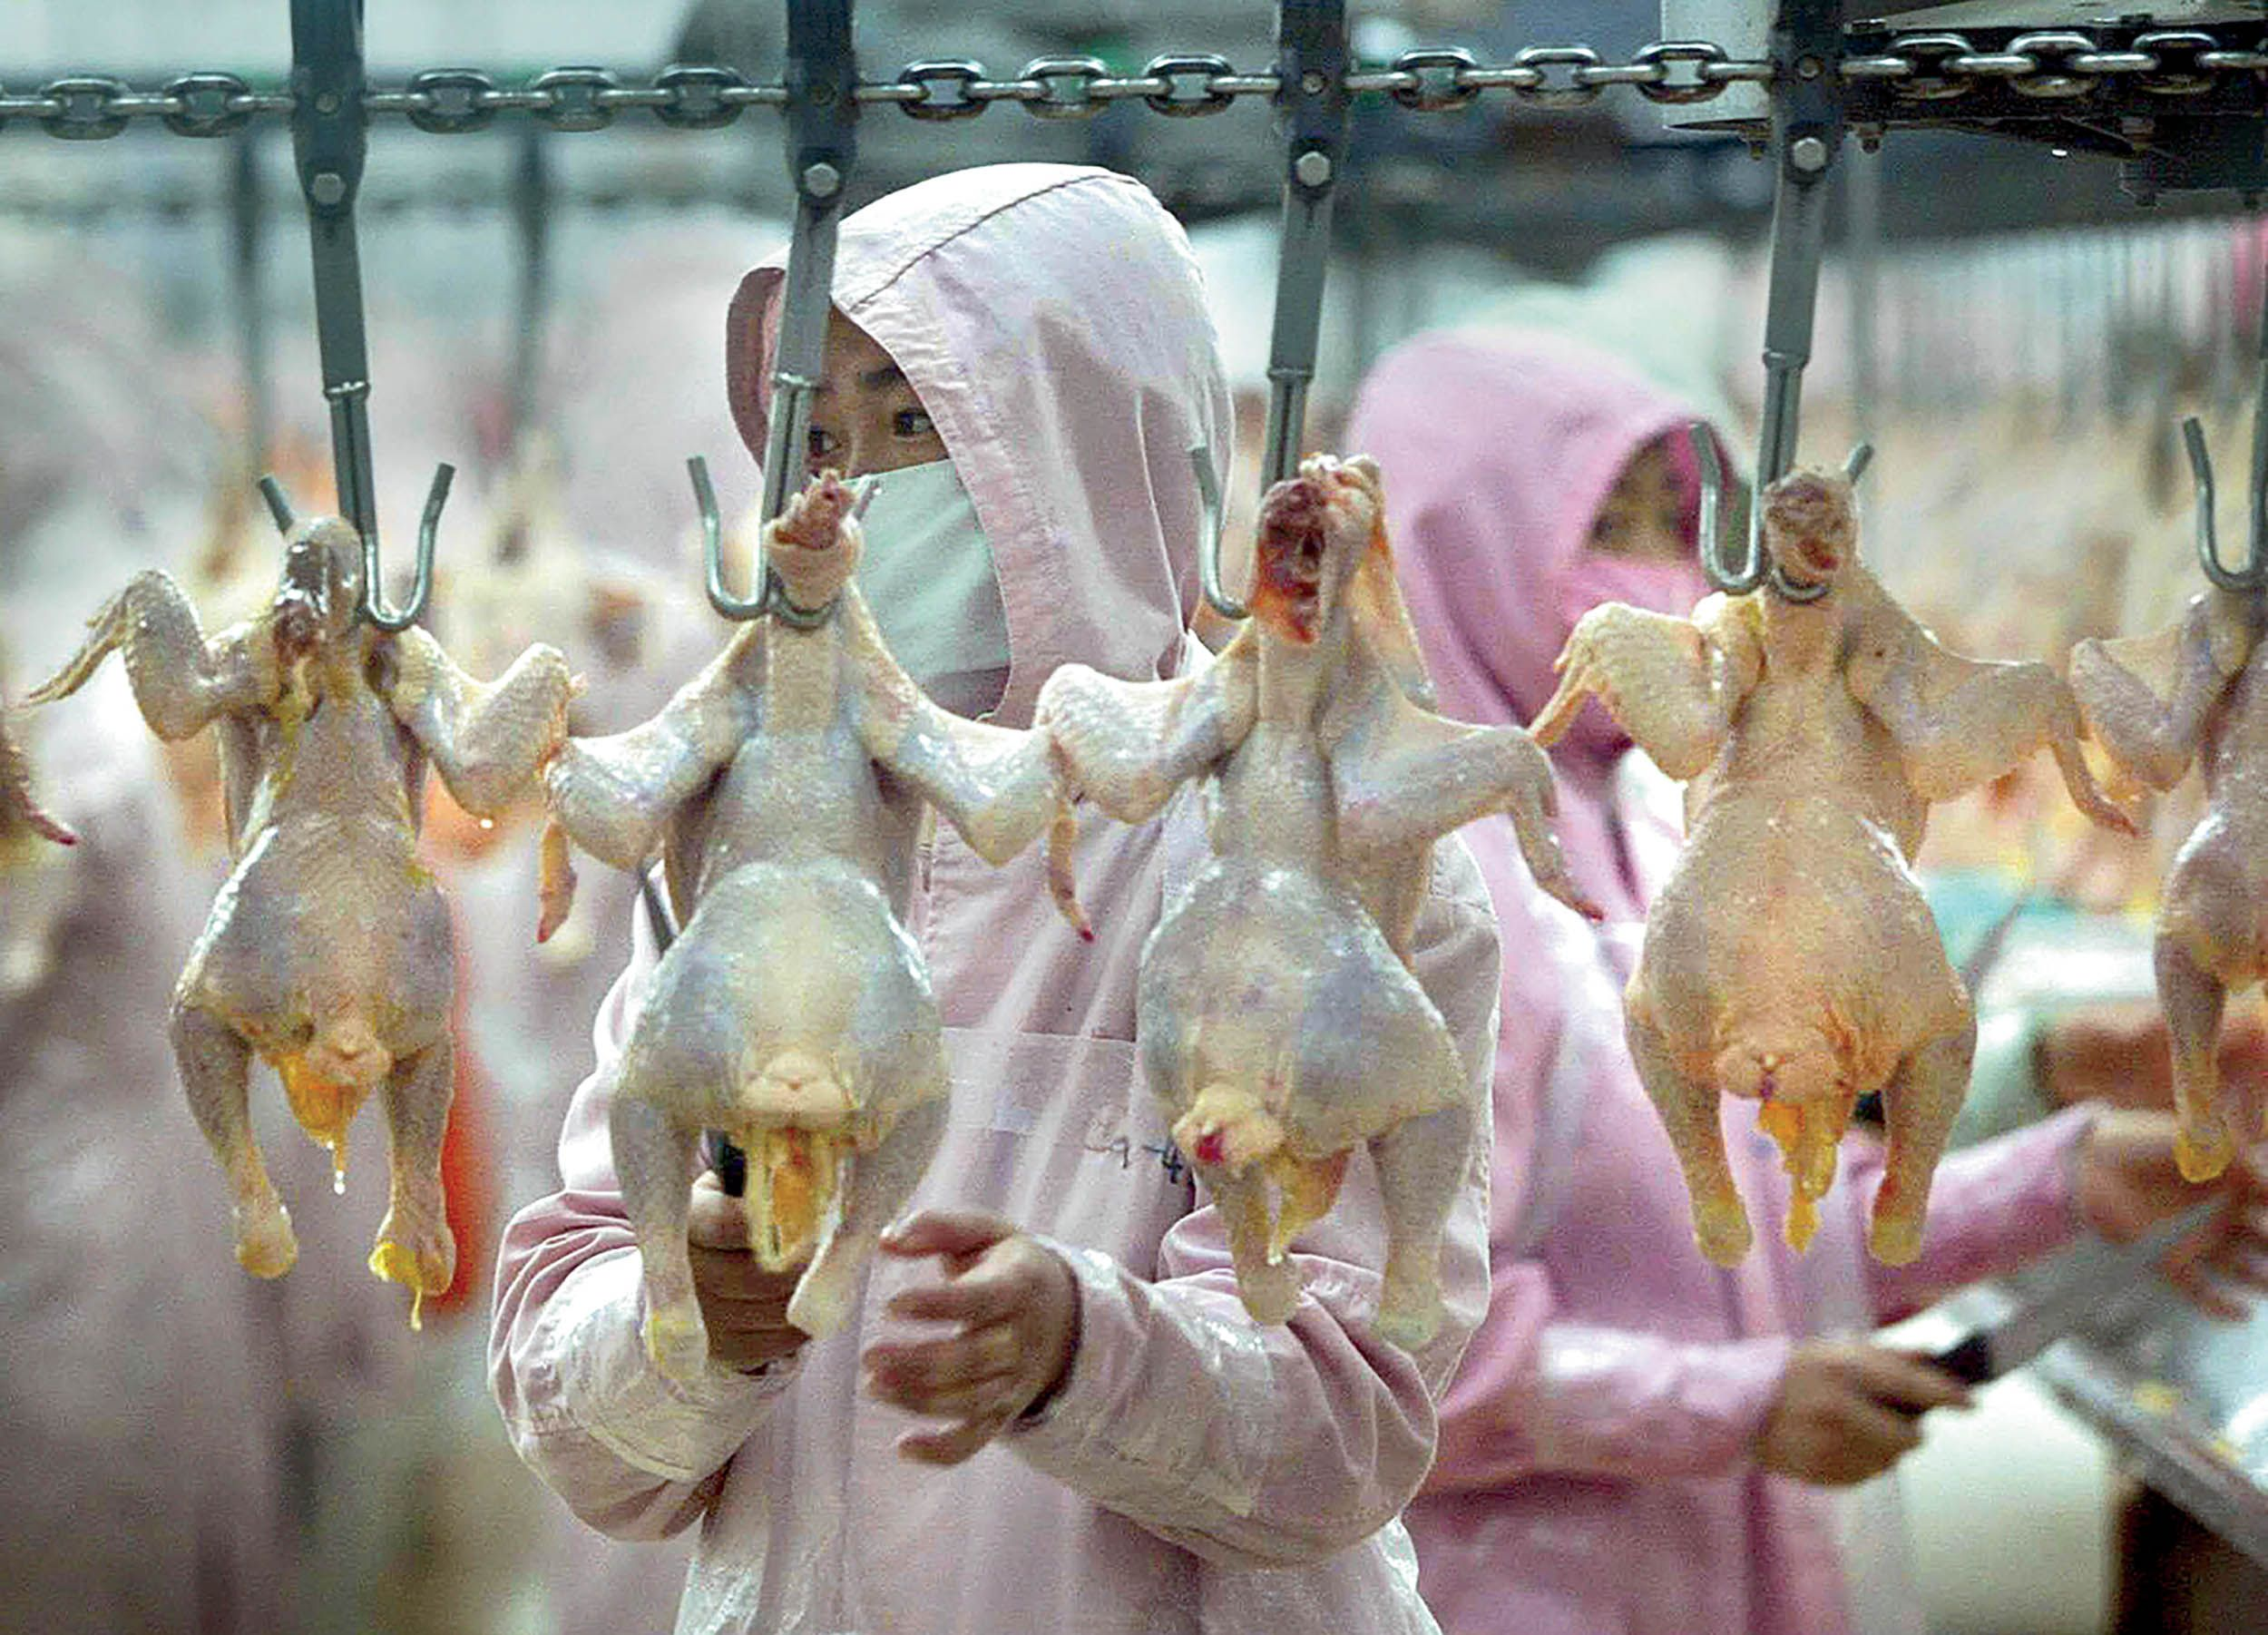 The Curious Case of the Chinese Chicken Import-Export Business